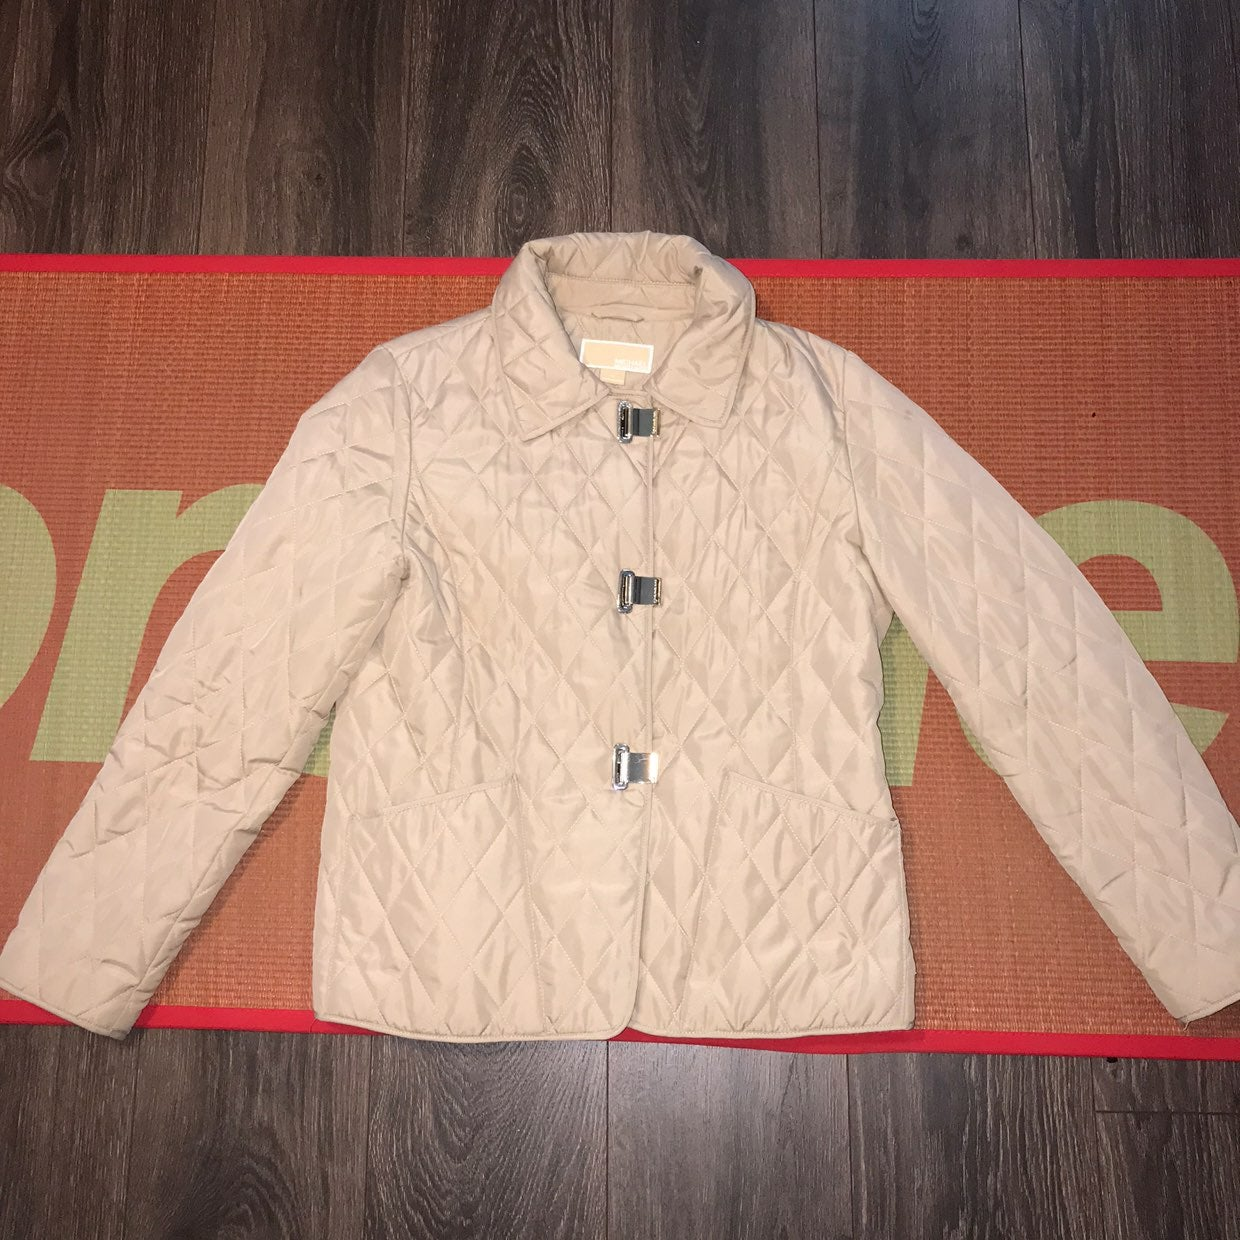 Michael Kors Coat Jacket Medium Cream